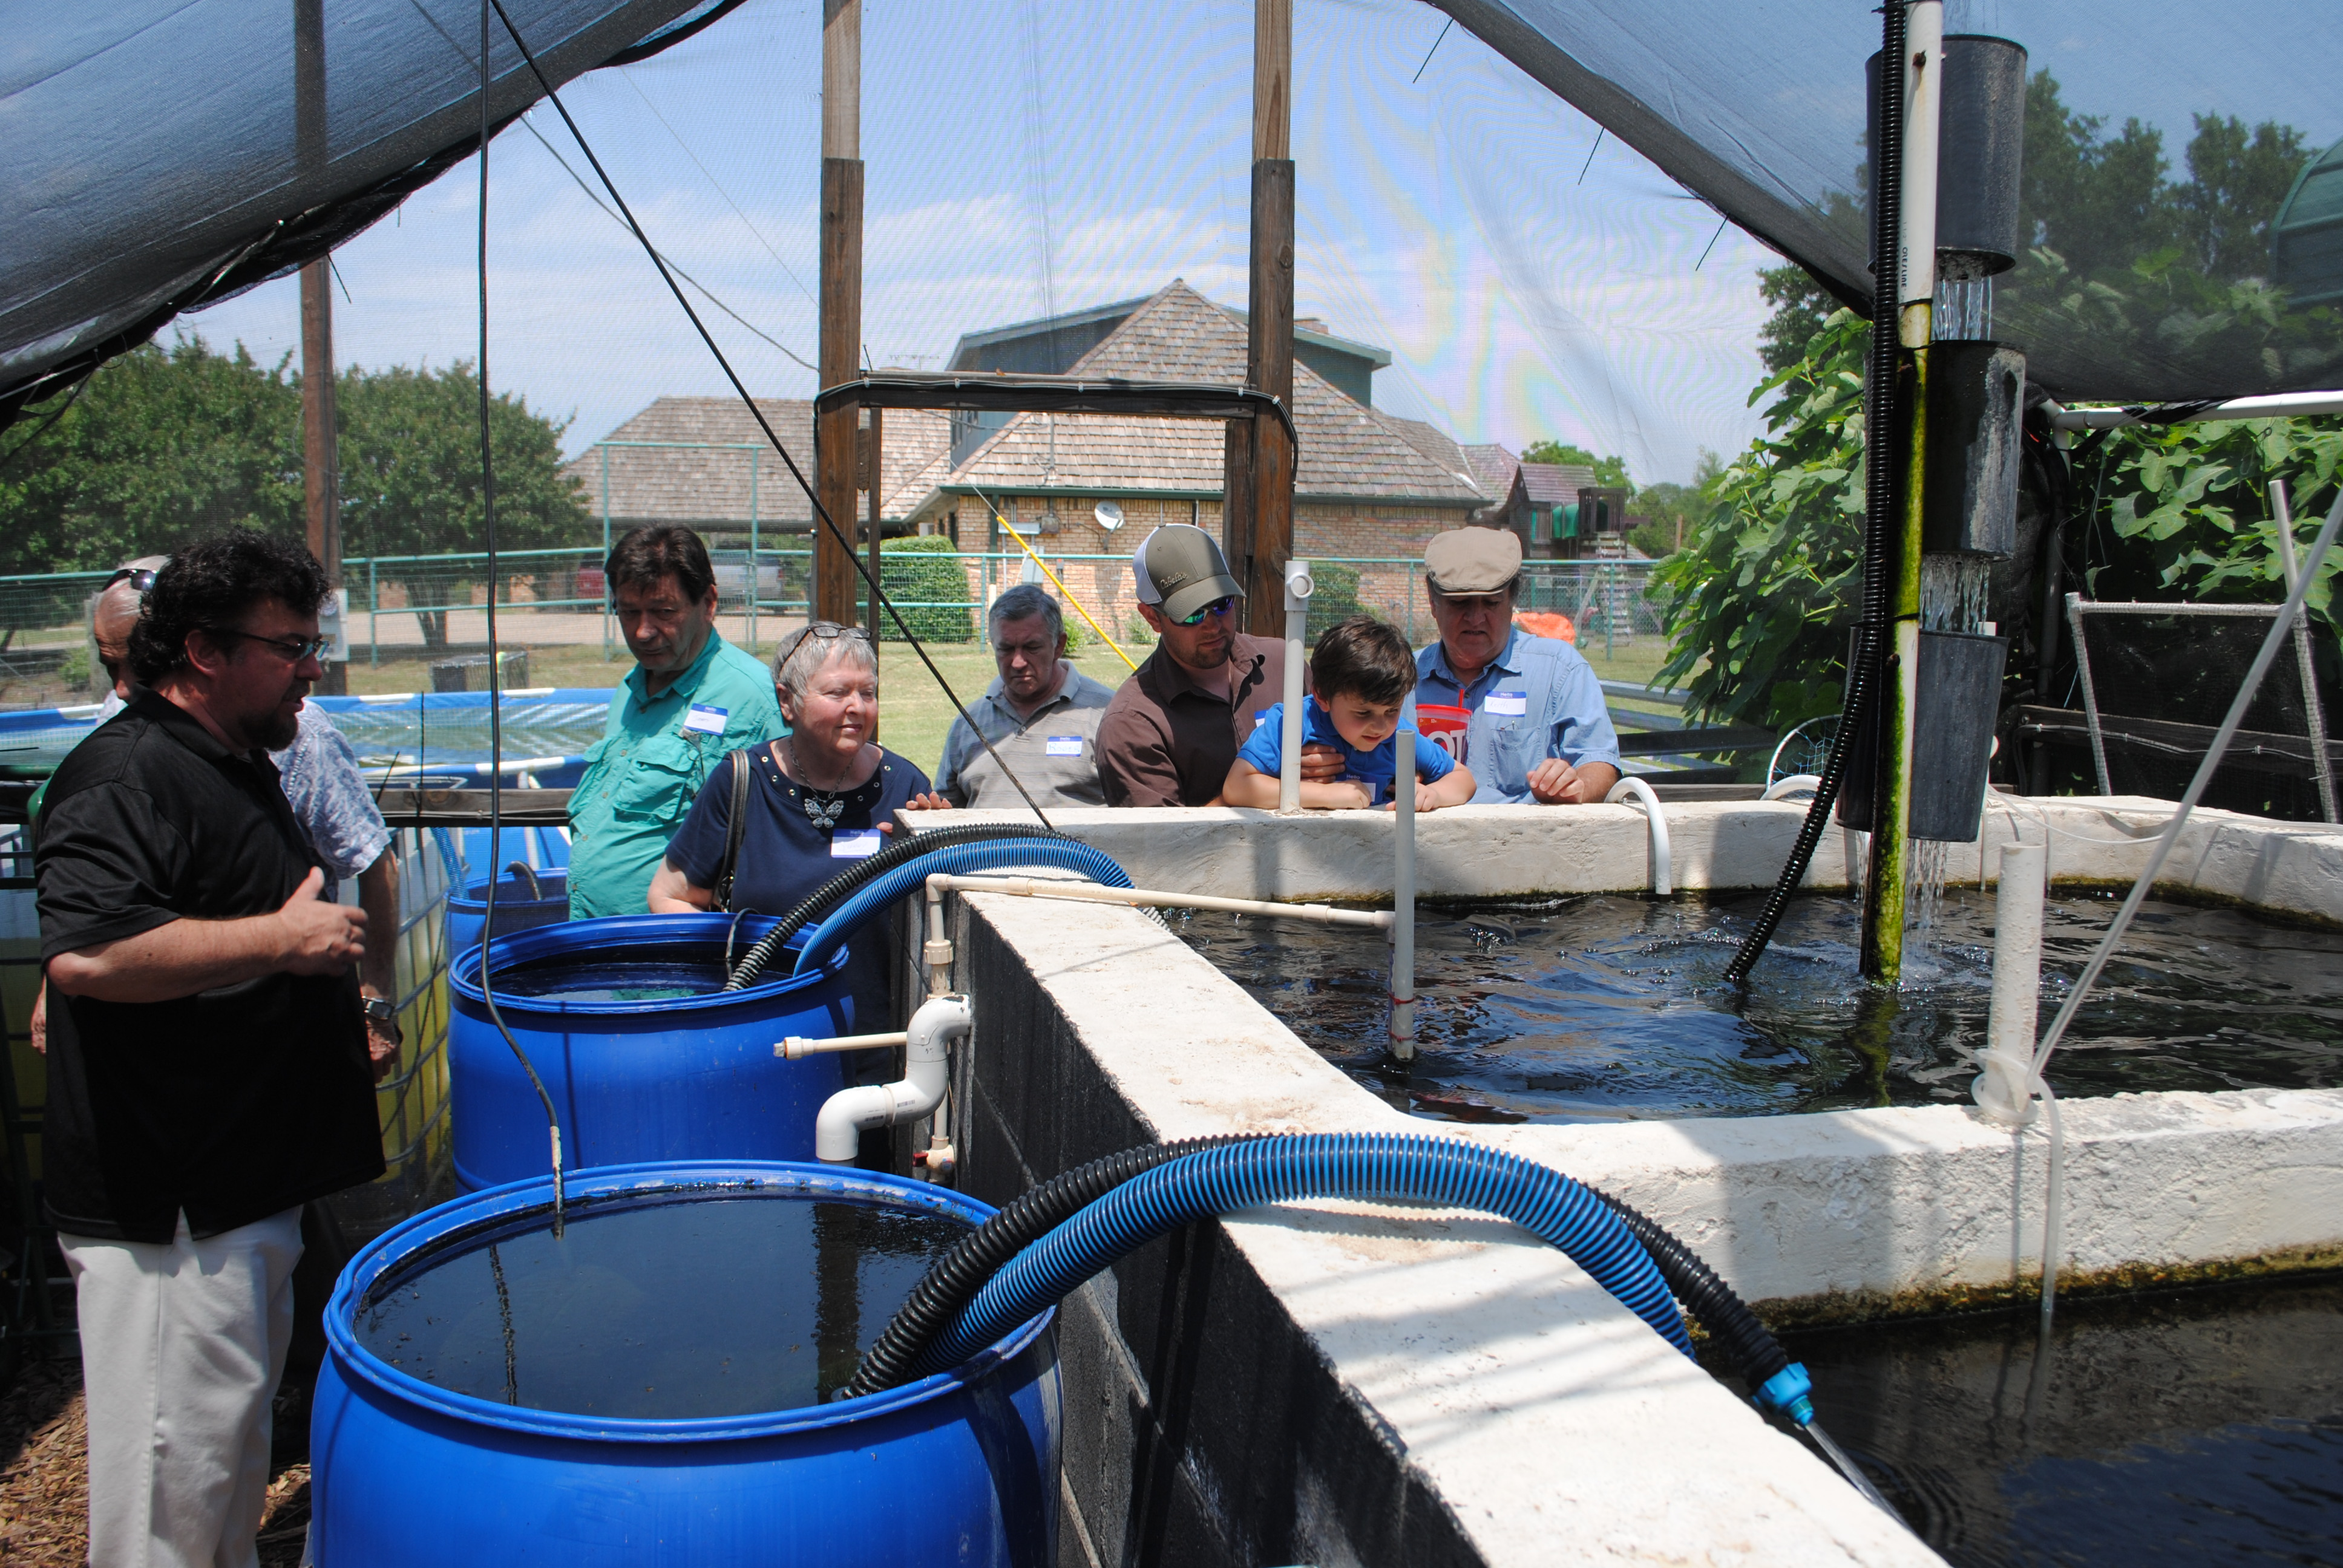 The Great Aquaponics Food Safety Hoax